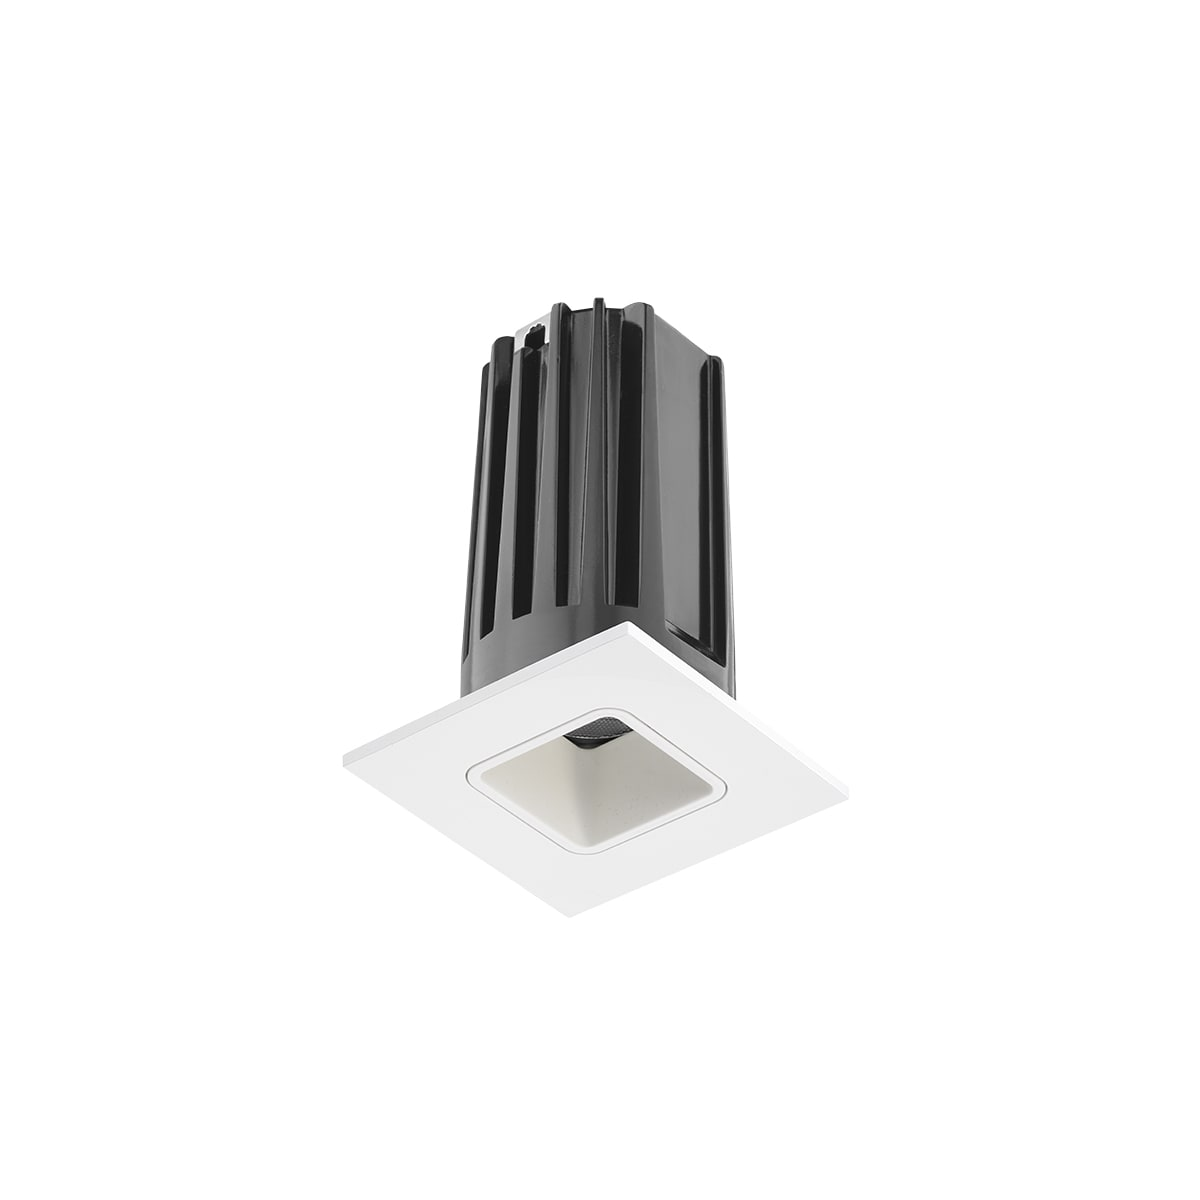 Juno Lighting 2LEDTRIM G2 SQ 30K 90CRI FL WWH White White 3000K